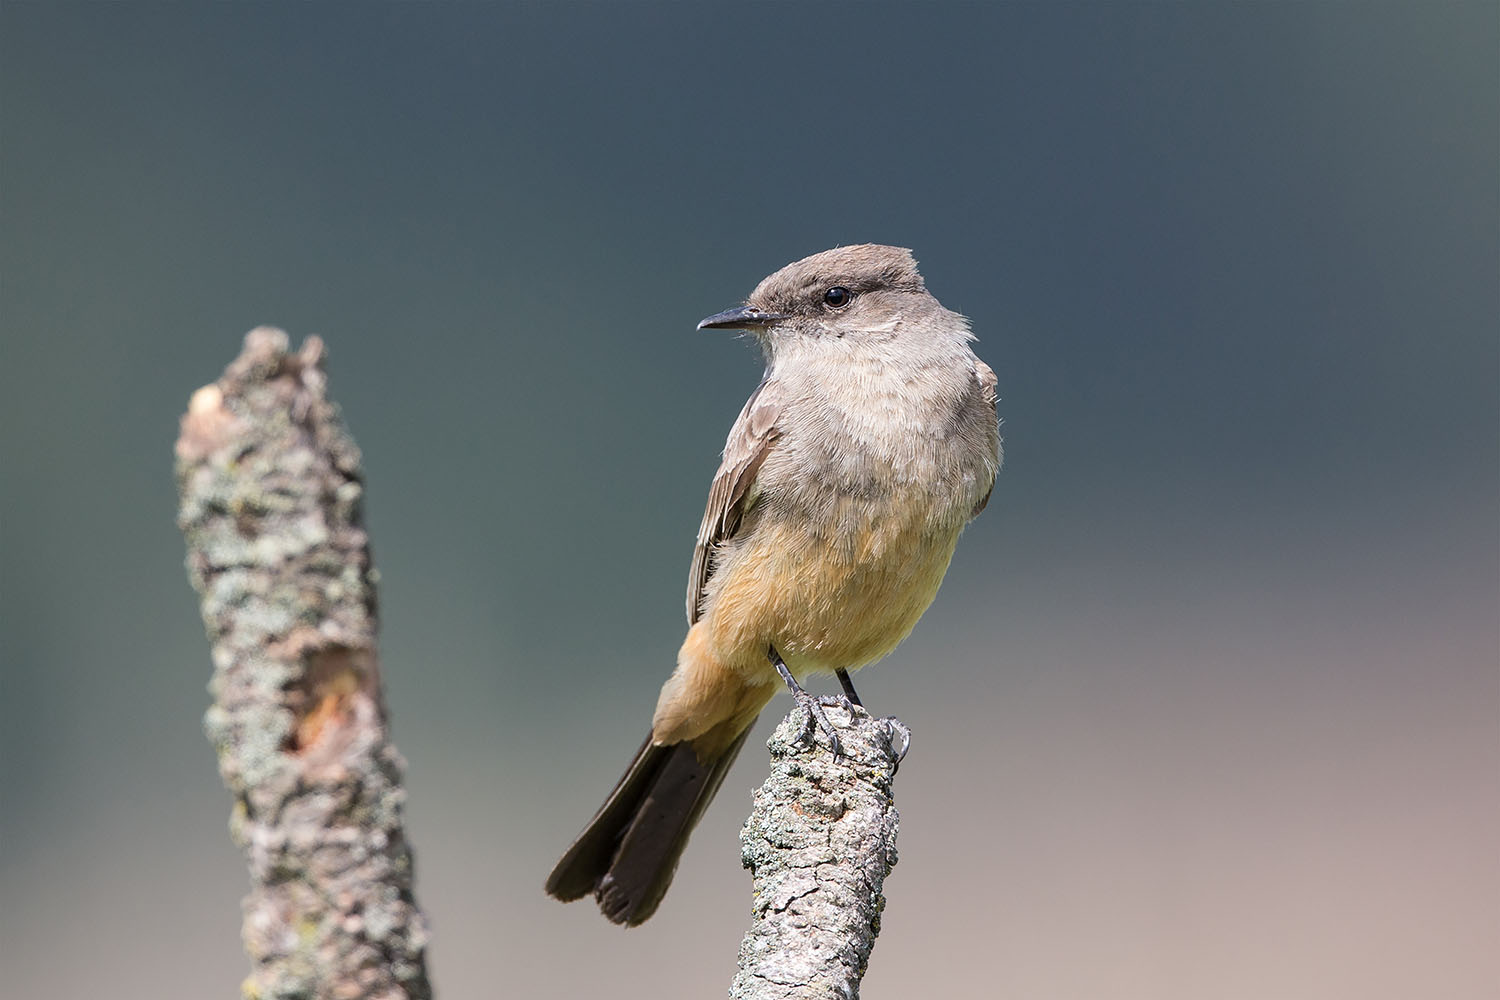 Say's Phoebe. Photo by Double Brow Imagery/Shutterstock